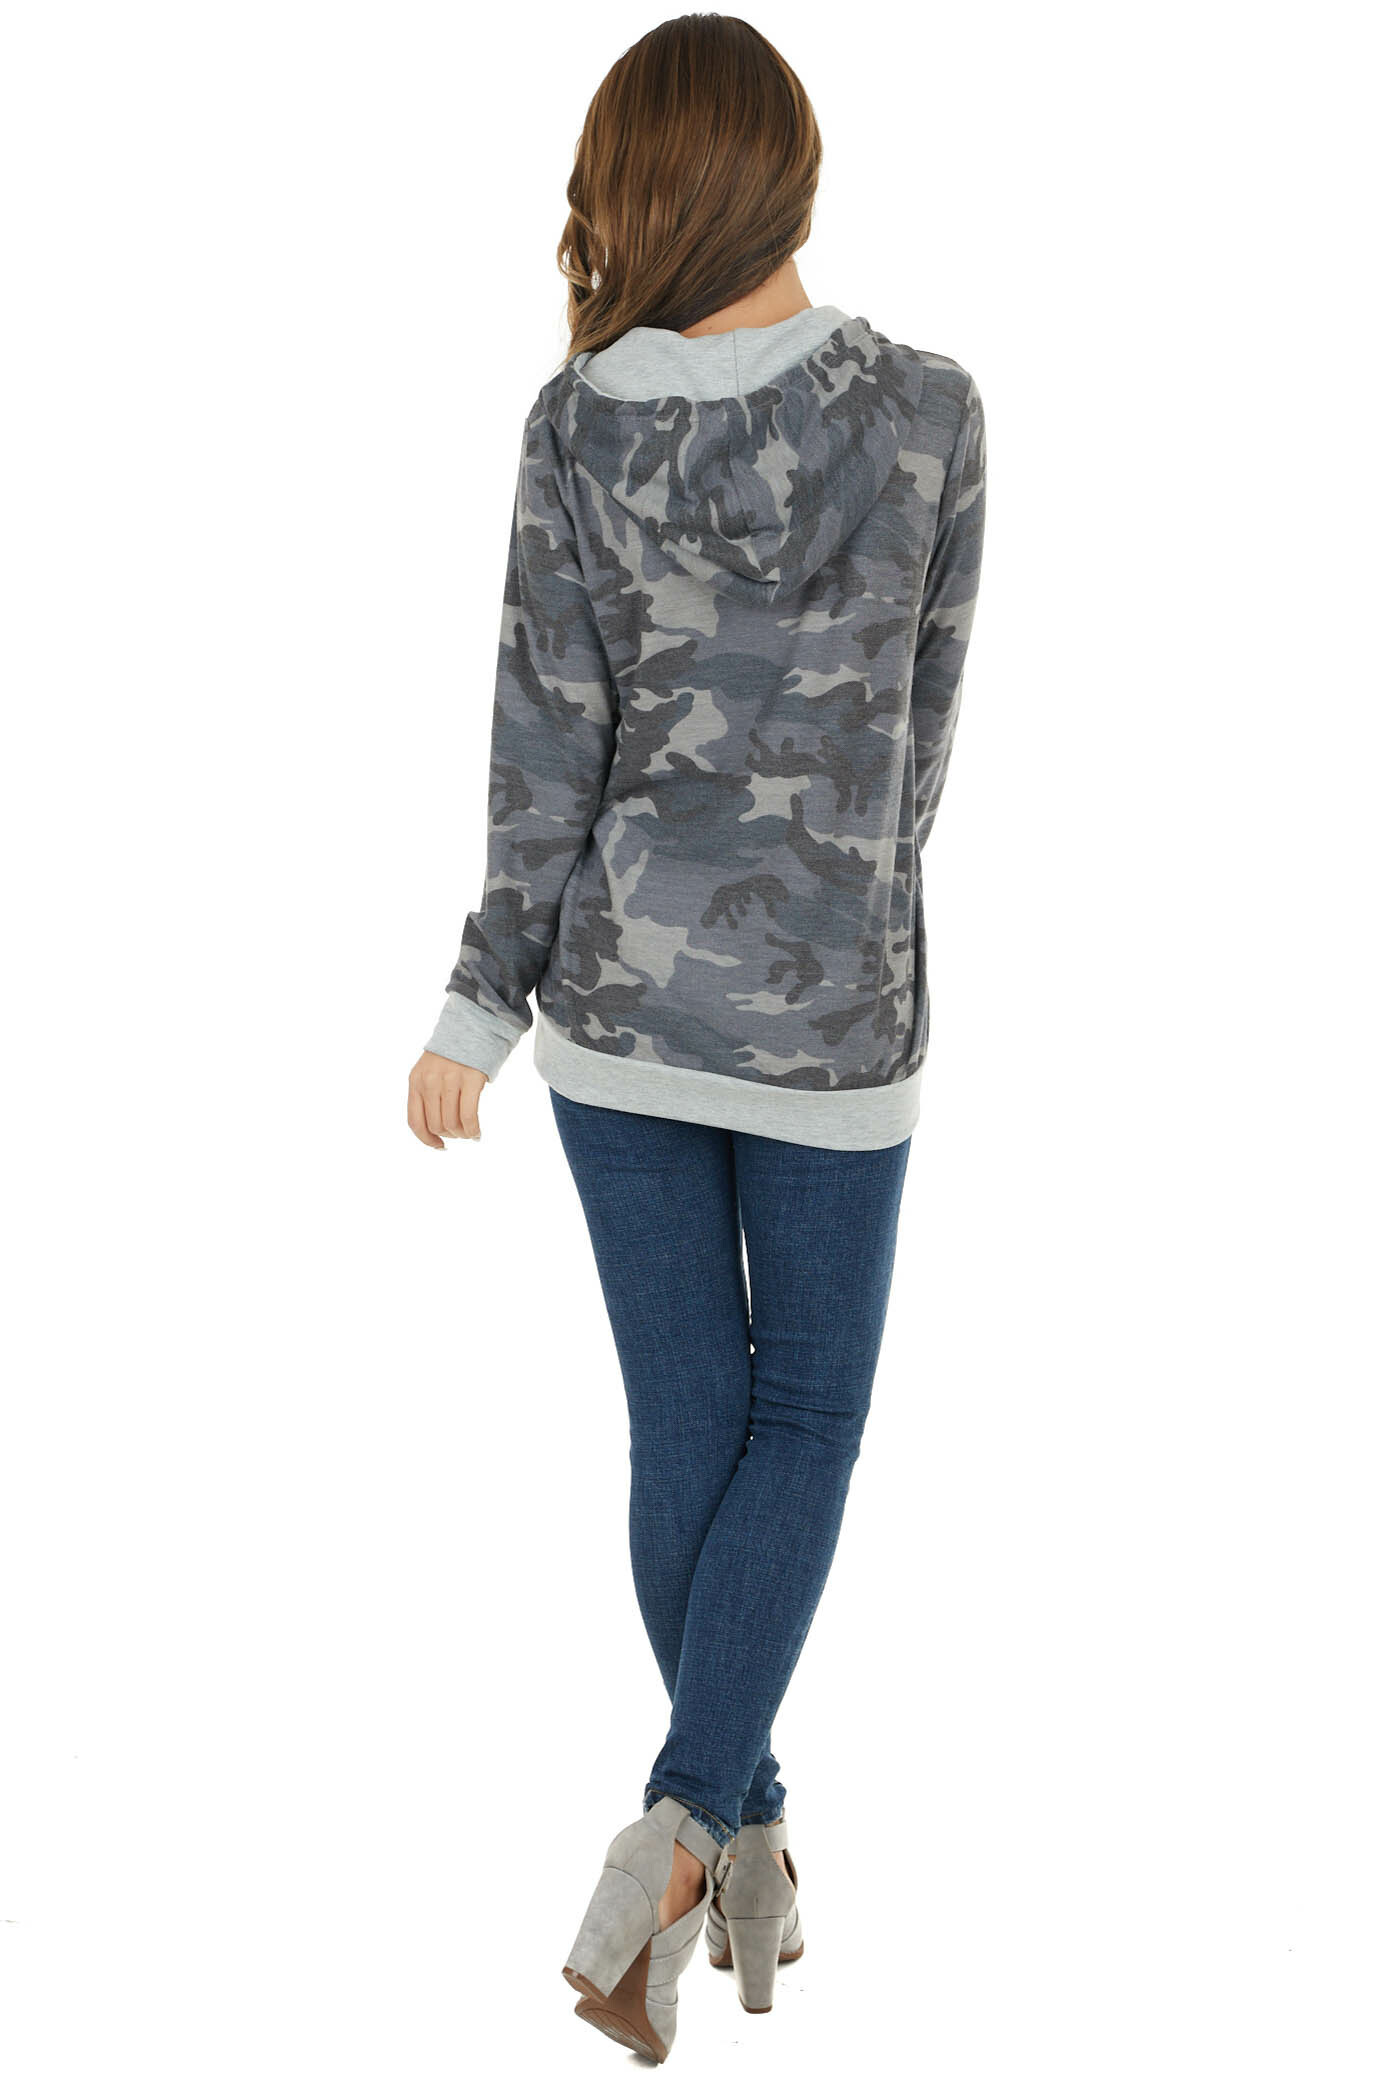 Slate Camo Print French Terry Hoodie with Kangaroo Pouch